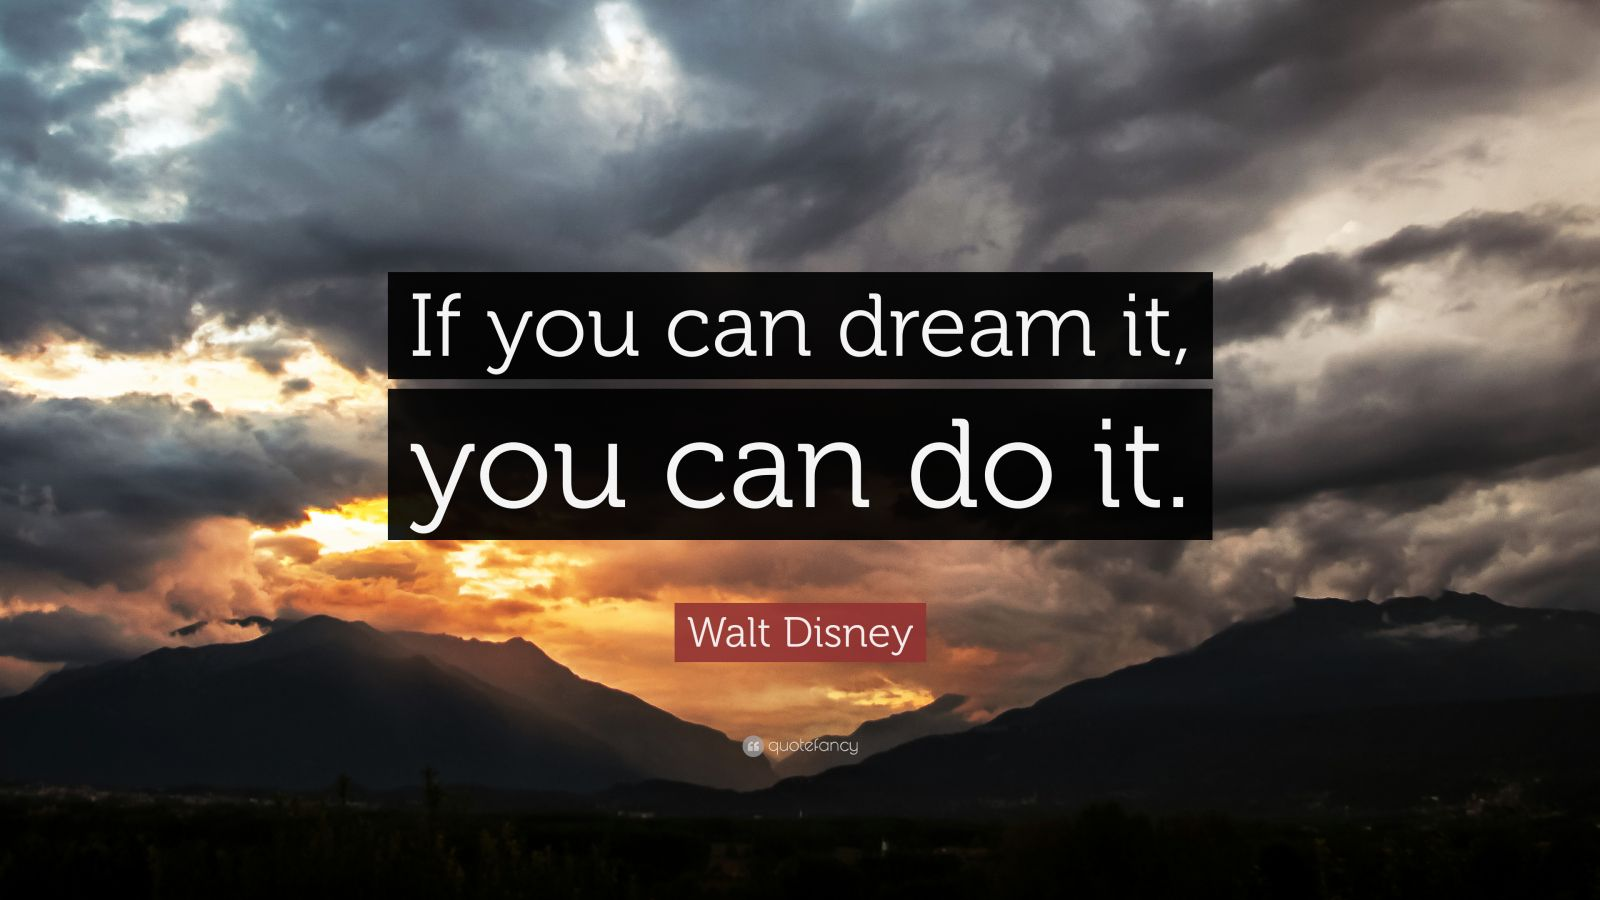 Mother Quotes Wallpapers Hd Walt Disney Quote If You Can Dream It You Can Do It